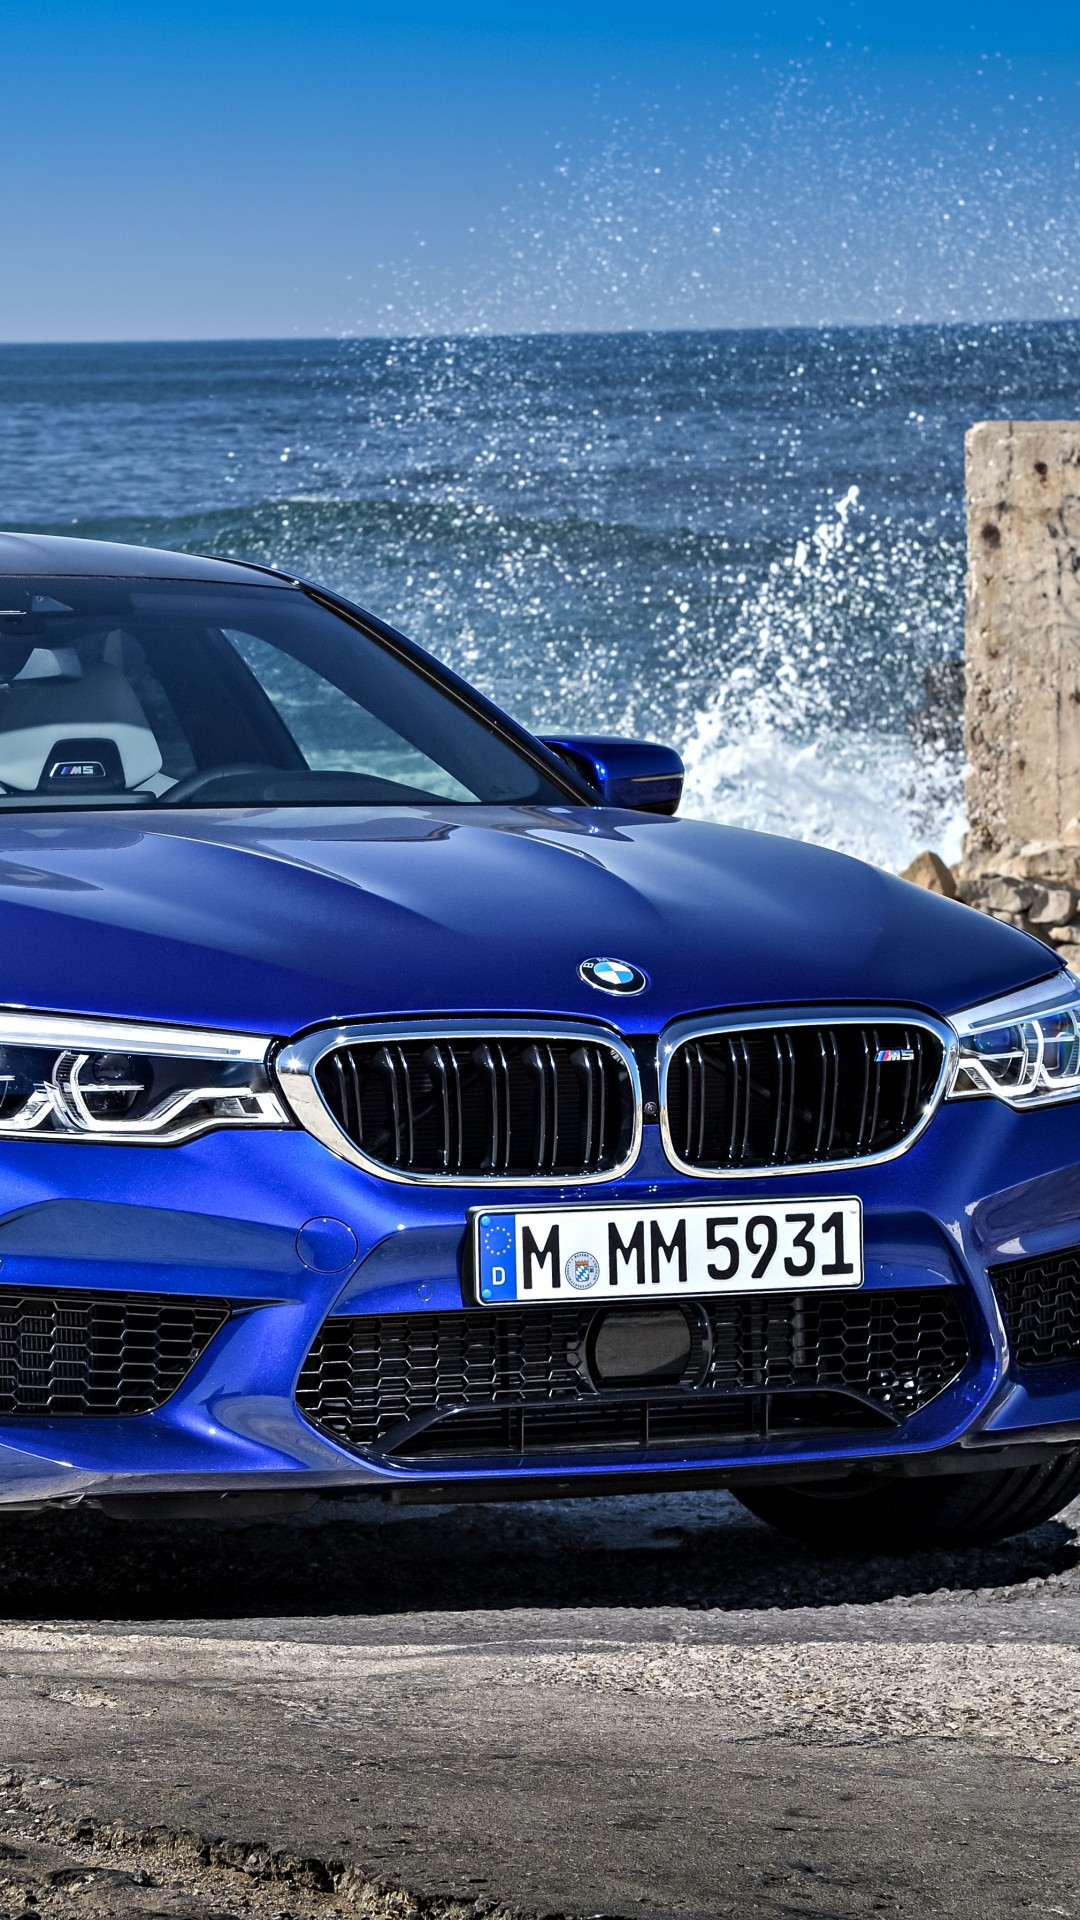 Wallpaper Bmw M5 Cars 2018 5k Cars Amp Bikes 17135